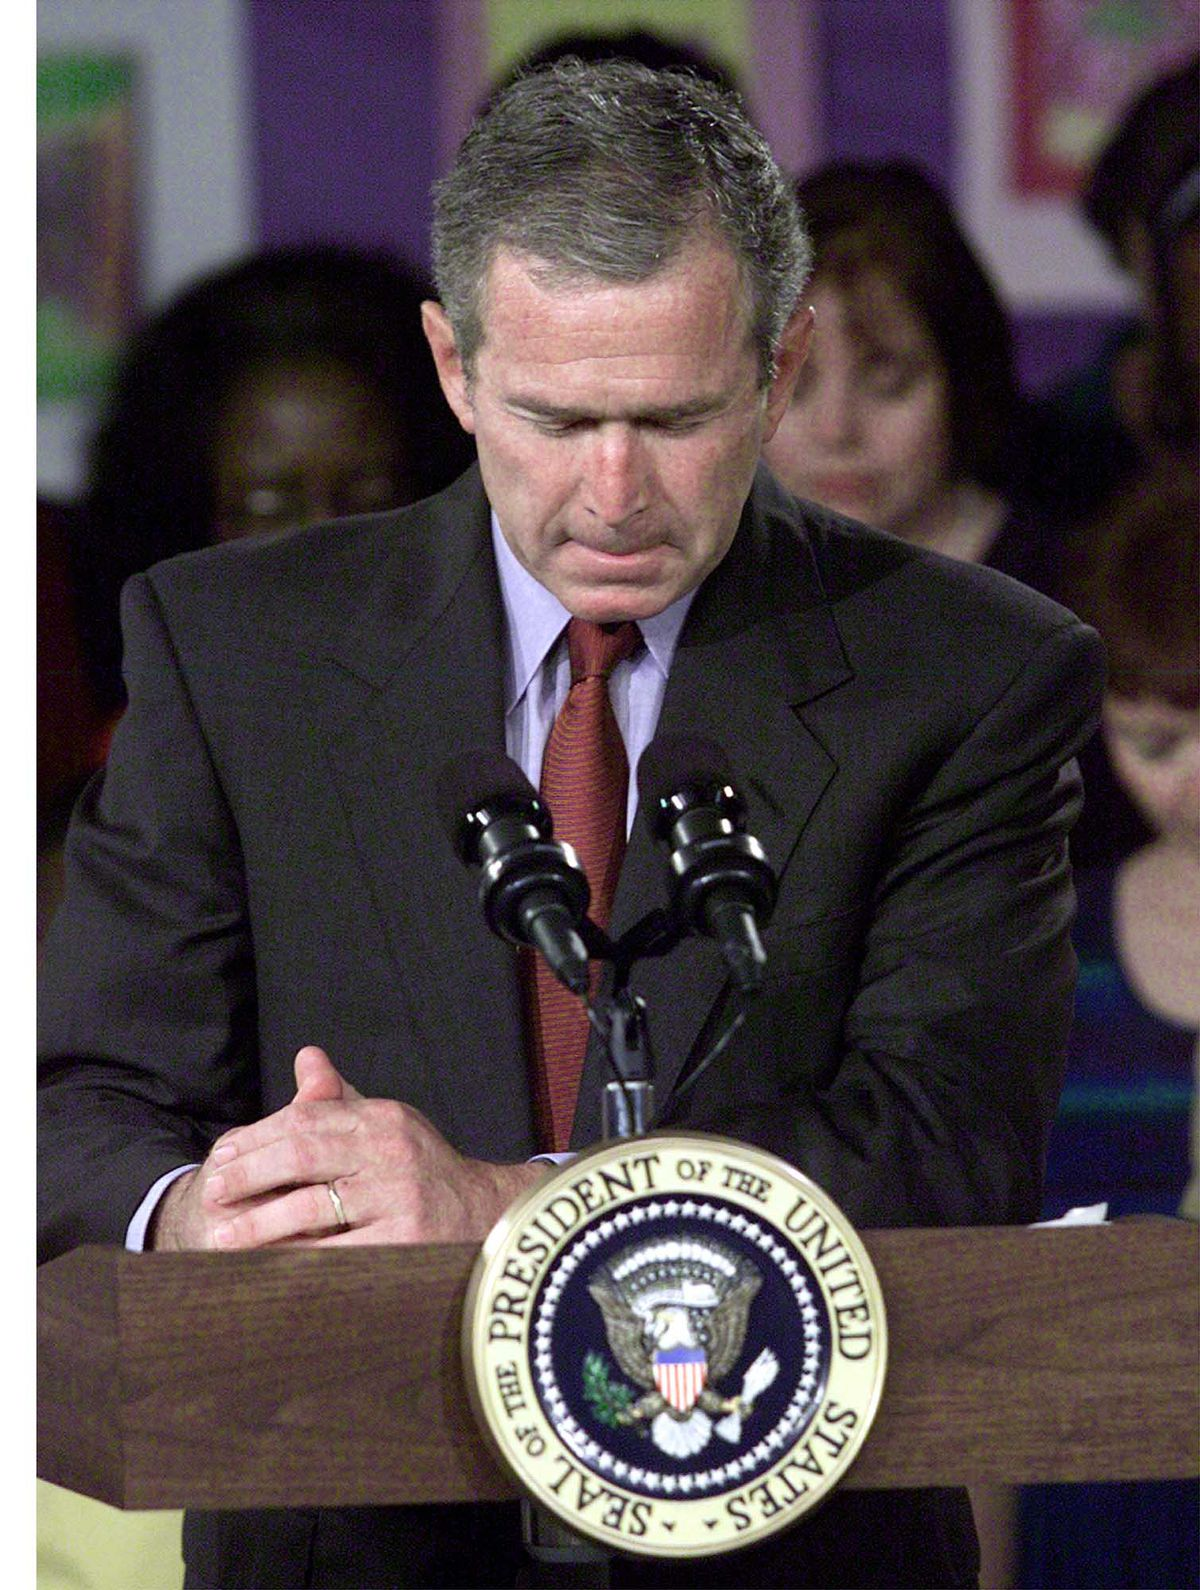 President Bush bows his head for a moment of silence following the plane crashes into the World Trade Center, during a visit to the Emma E. Booker Elementary School in Sarasota, Fla., Tuesday, Sept. 11, 2001.